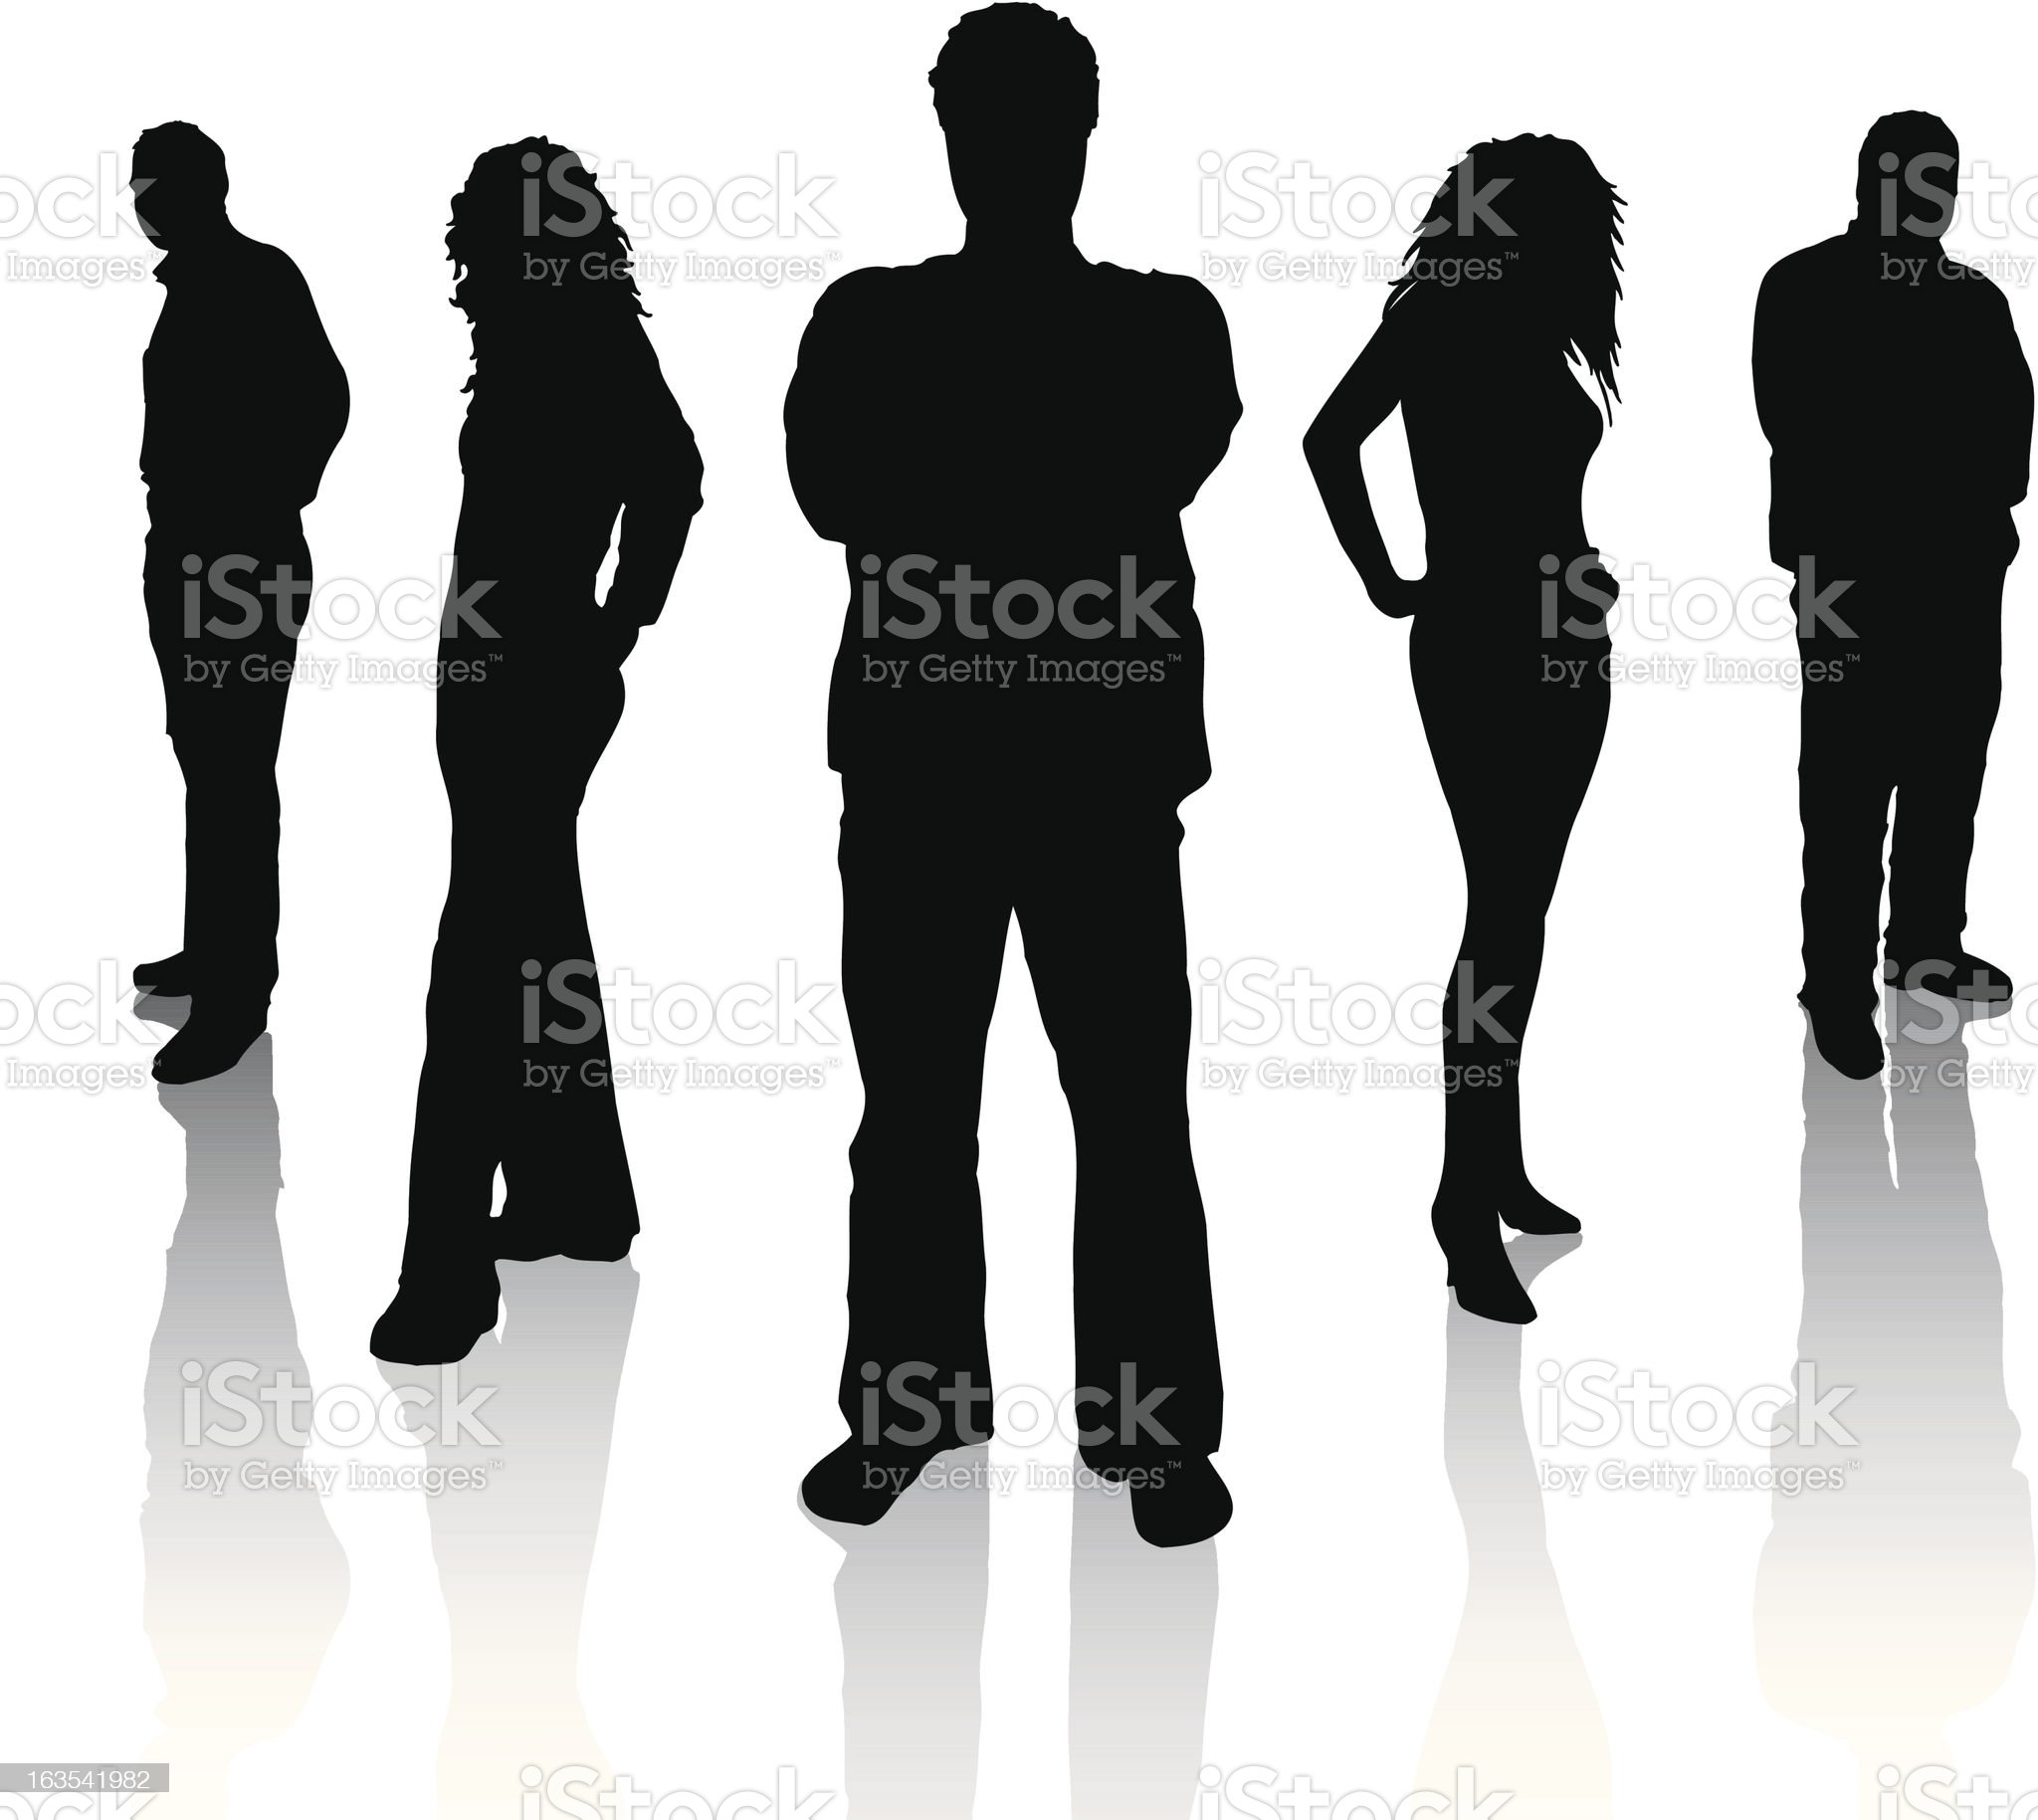 Silhouettes of five people on white background royalty-free stock vector art